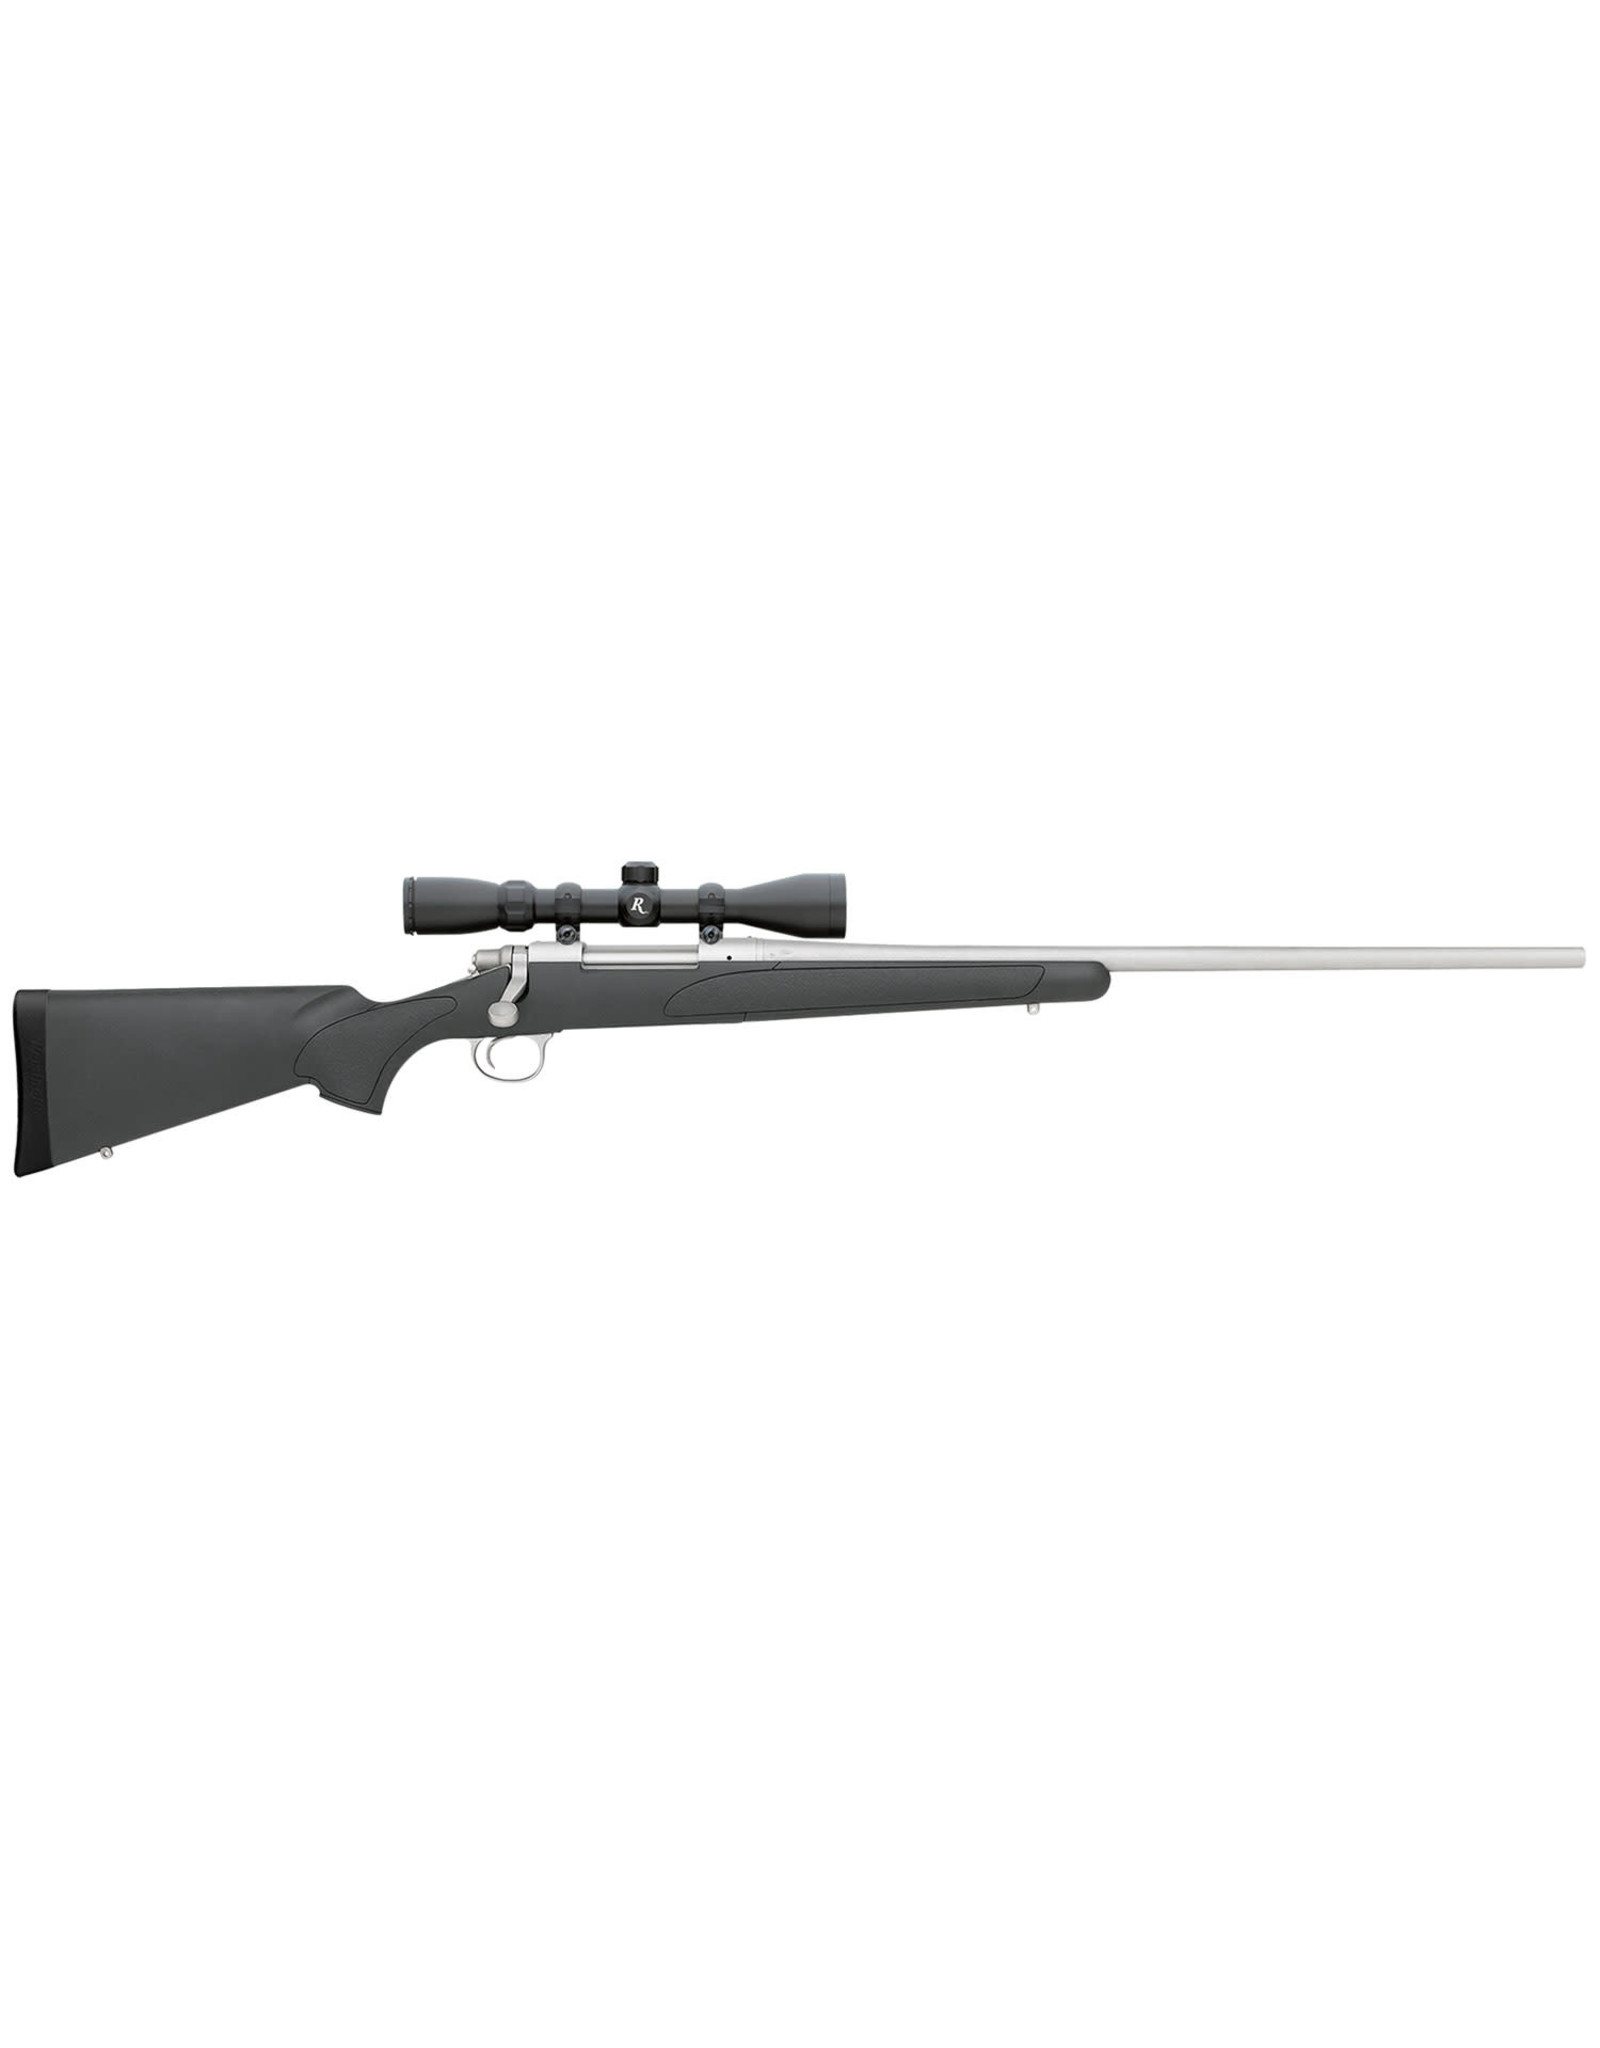 REMINGTON FIREARMS Remington 700 ADL .30-06 Spg. Stainless/Synthetic w/ 3-9x40 Scope